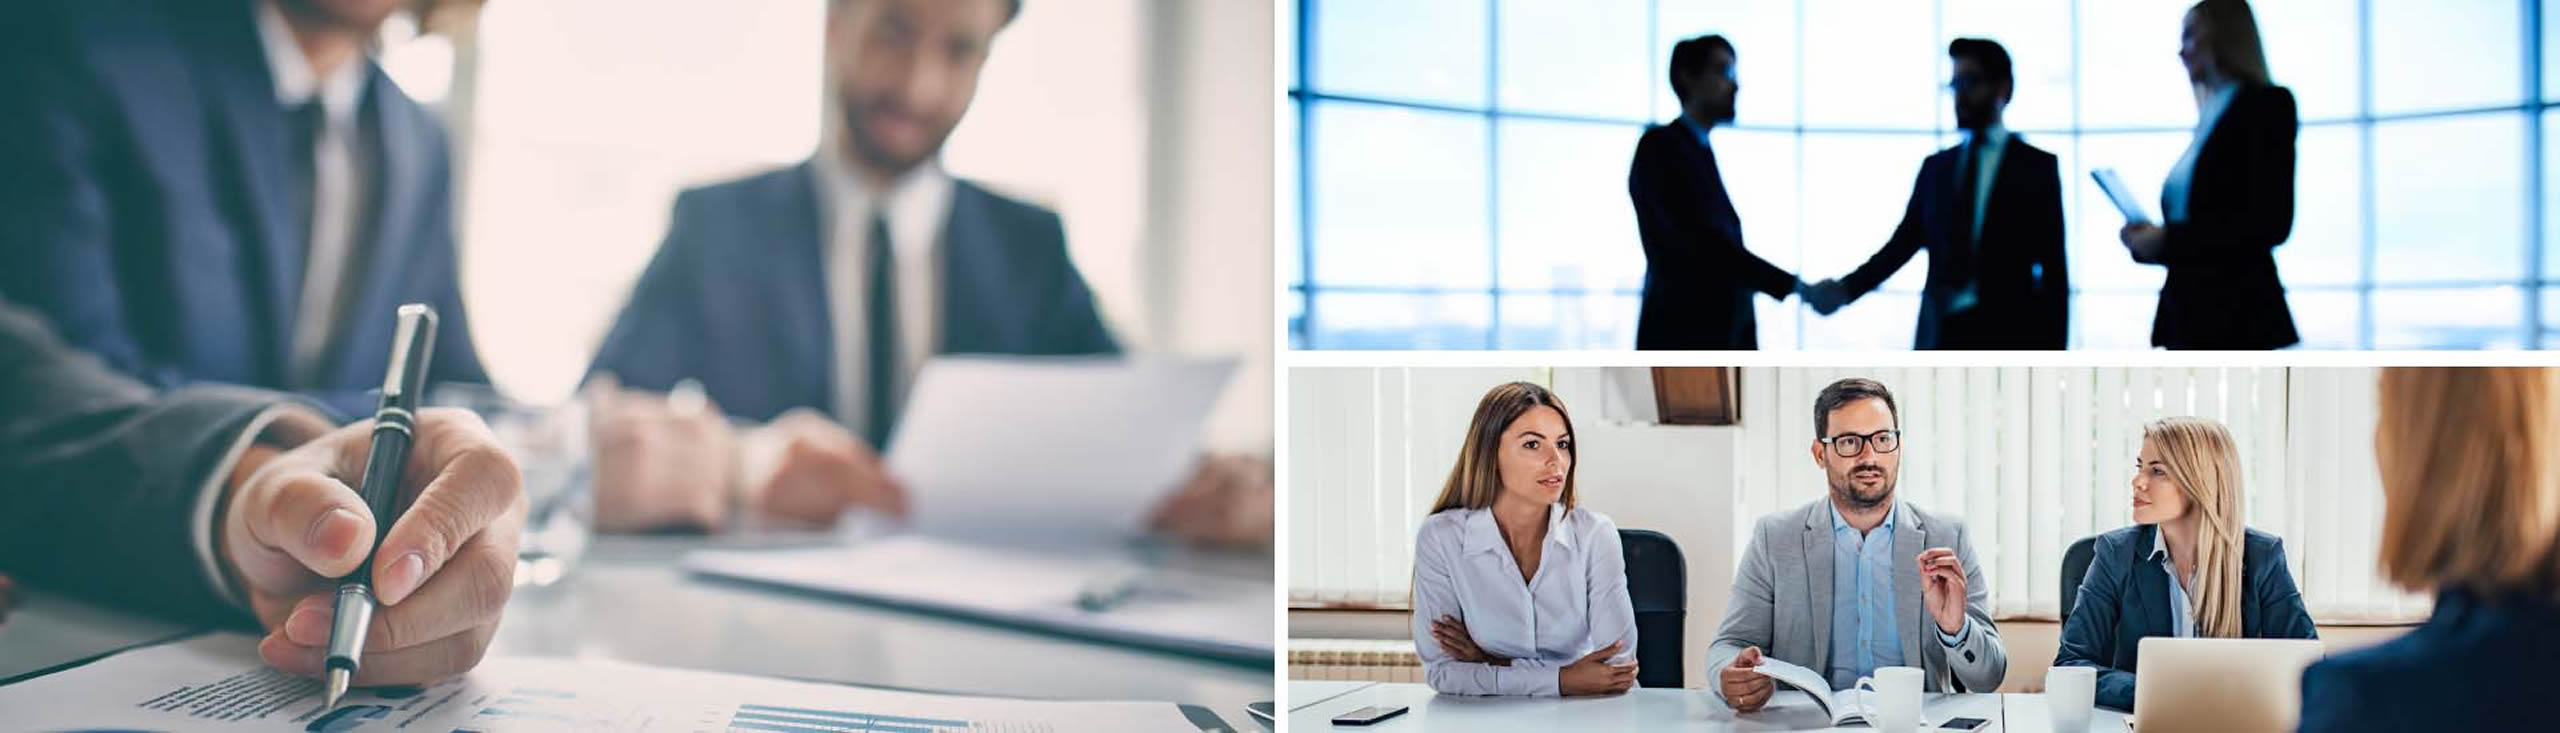 Three images of business professionals meeting, discussing ideas, taking notes and shaking hands.